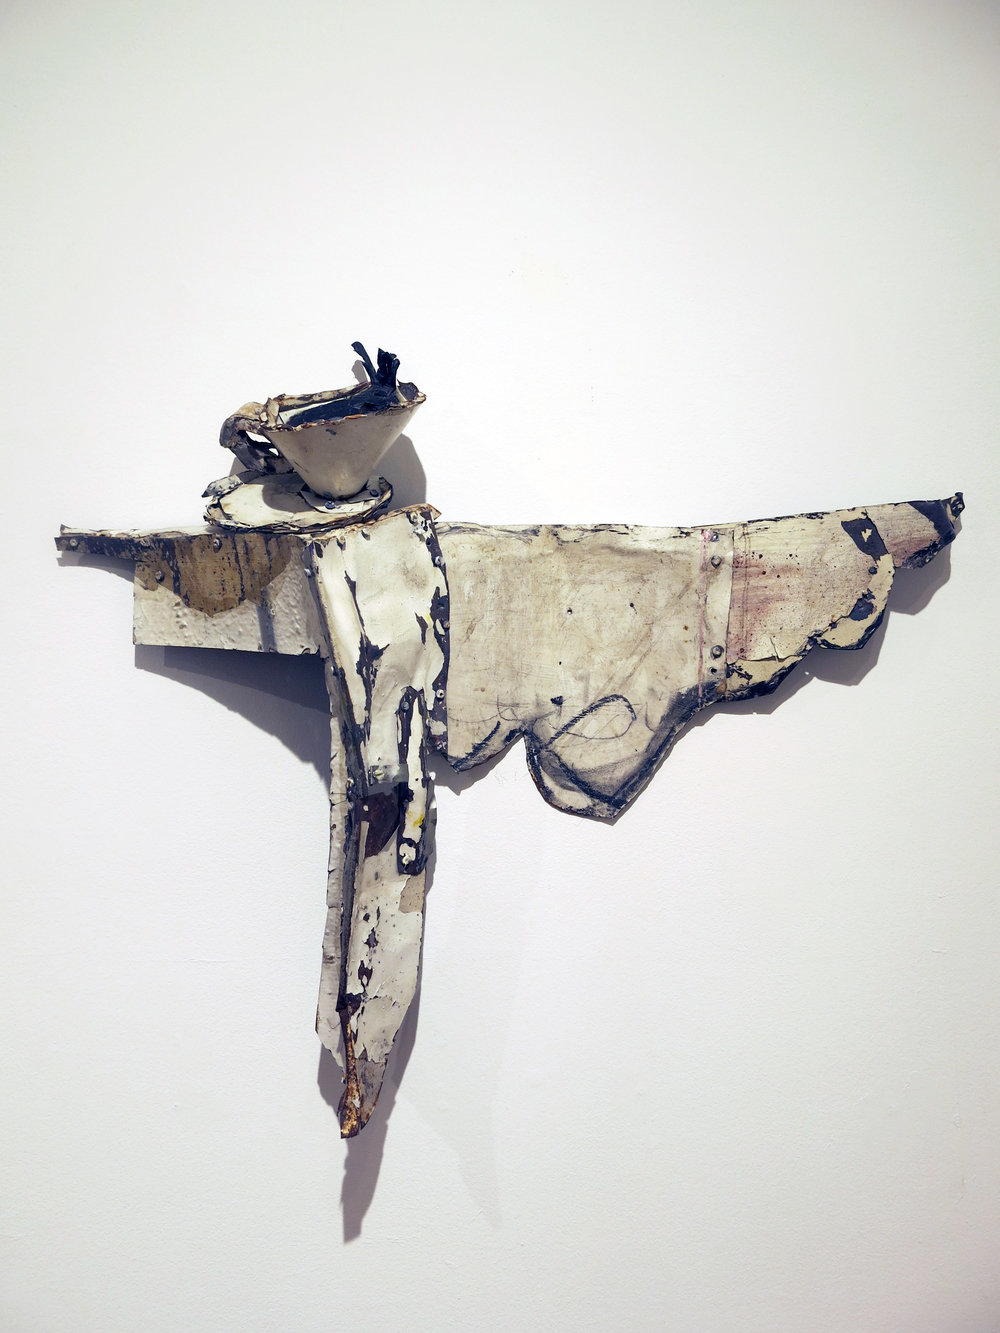 Matt Blackwell,  Coffee,  2015, sheet metal, rivets, caulk, 26h x 24w x 6d in.